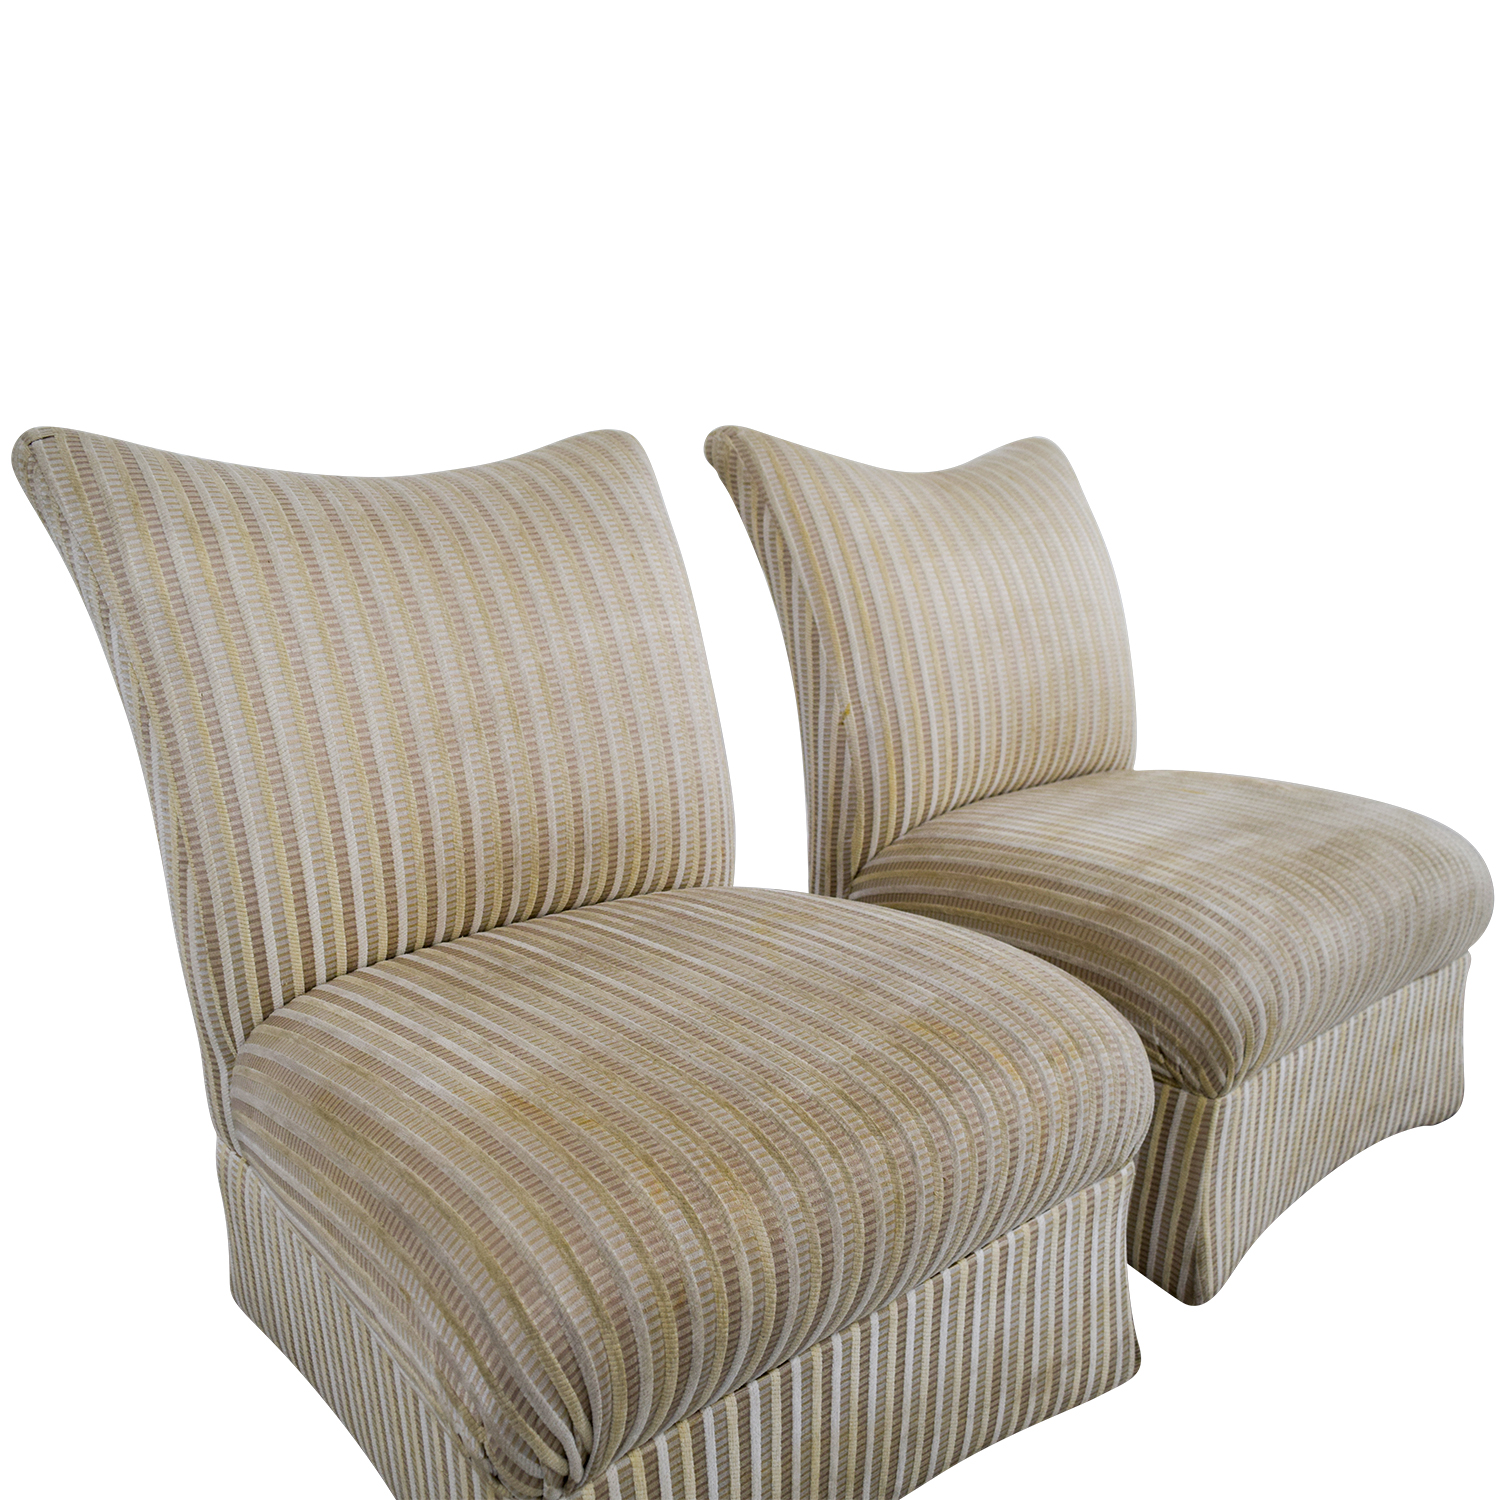 Ethan Allen Ethan Allen Striped Accent Chairs discount